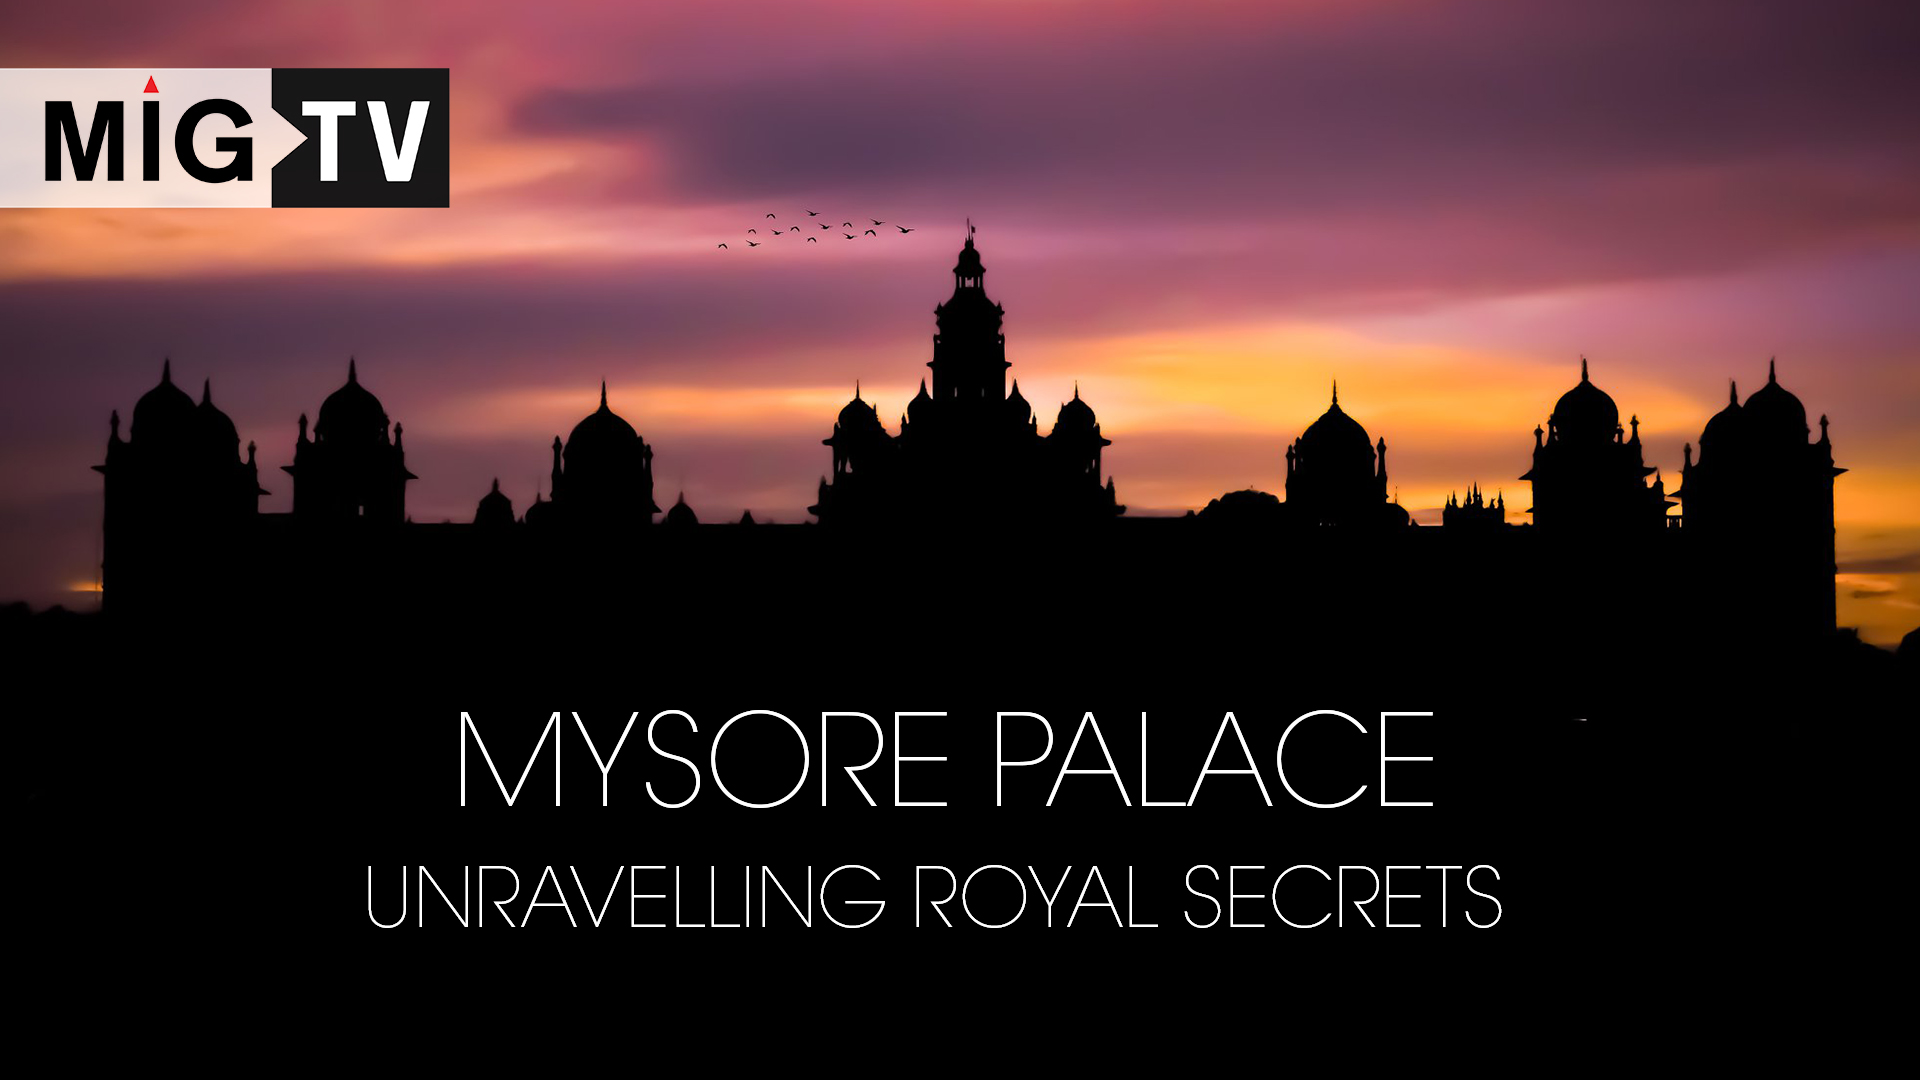 The age old glory of Mysore Palace